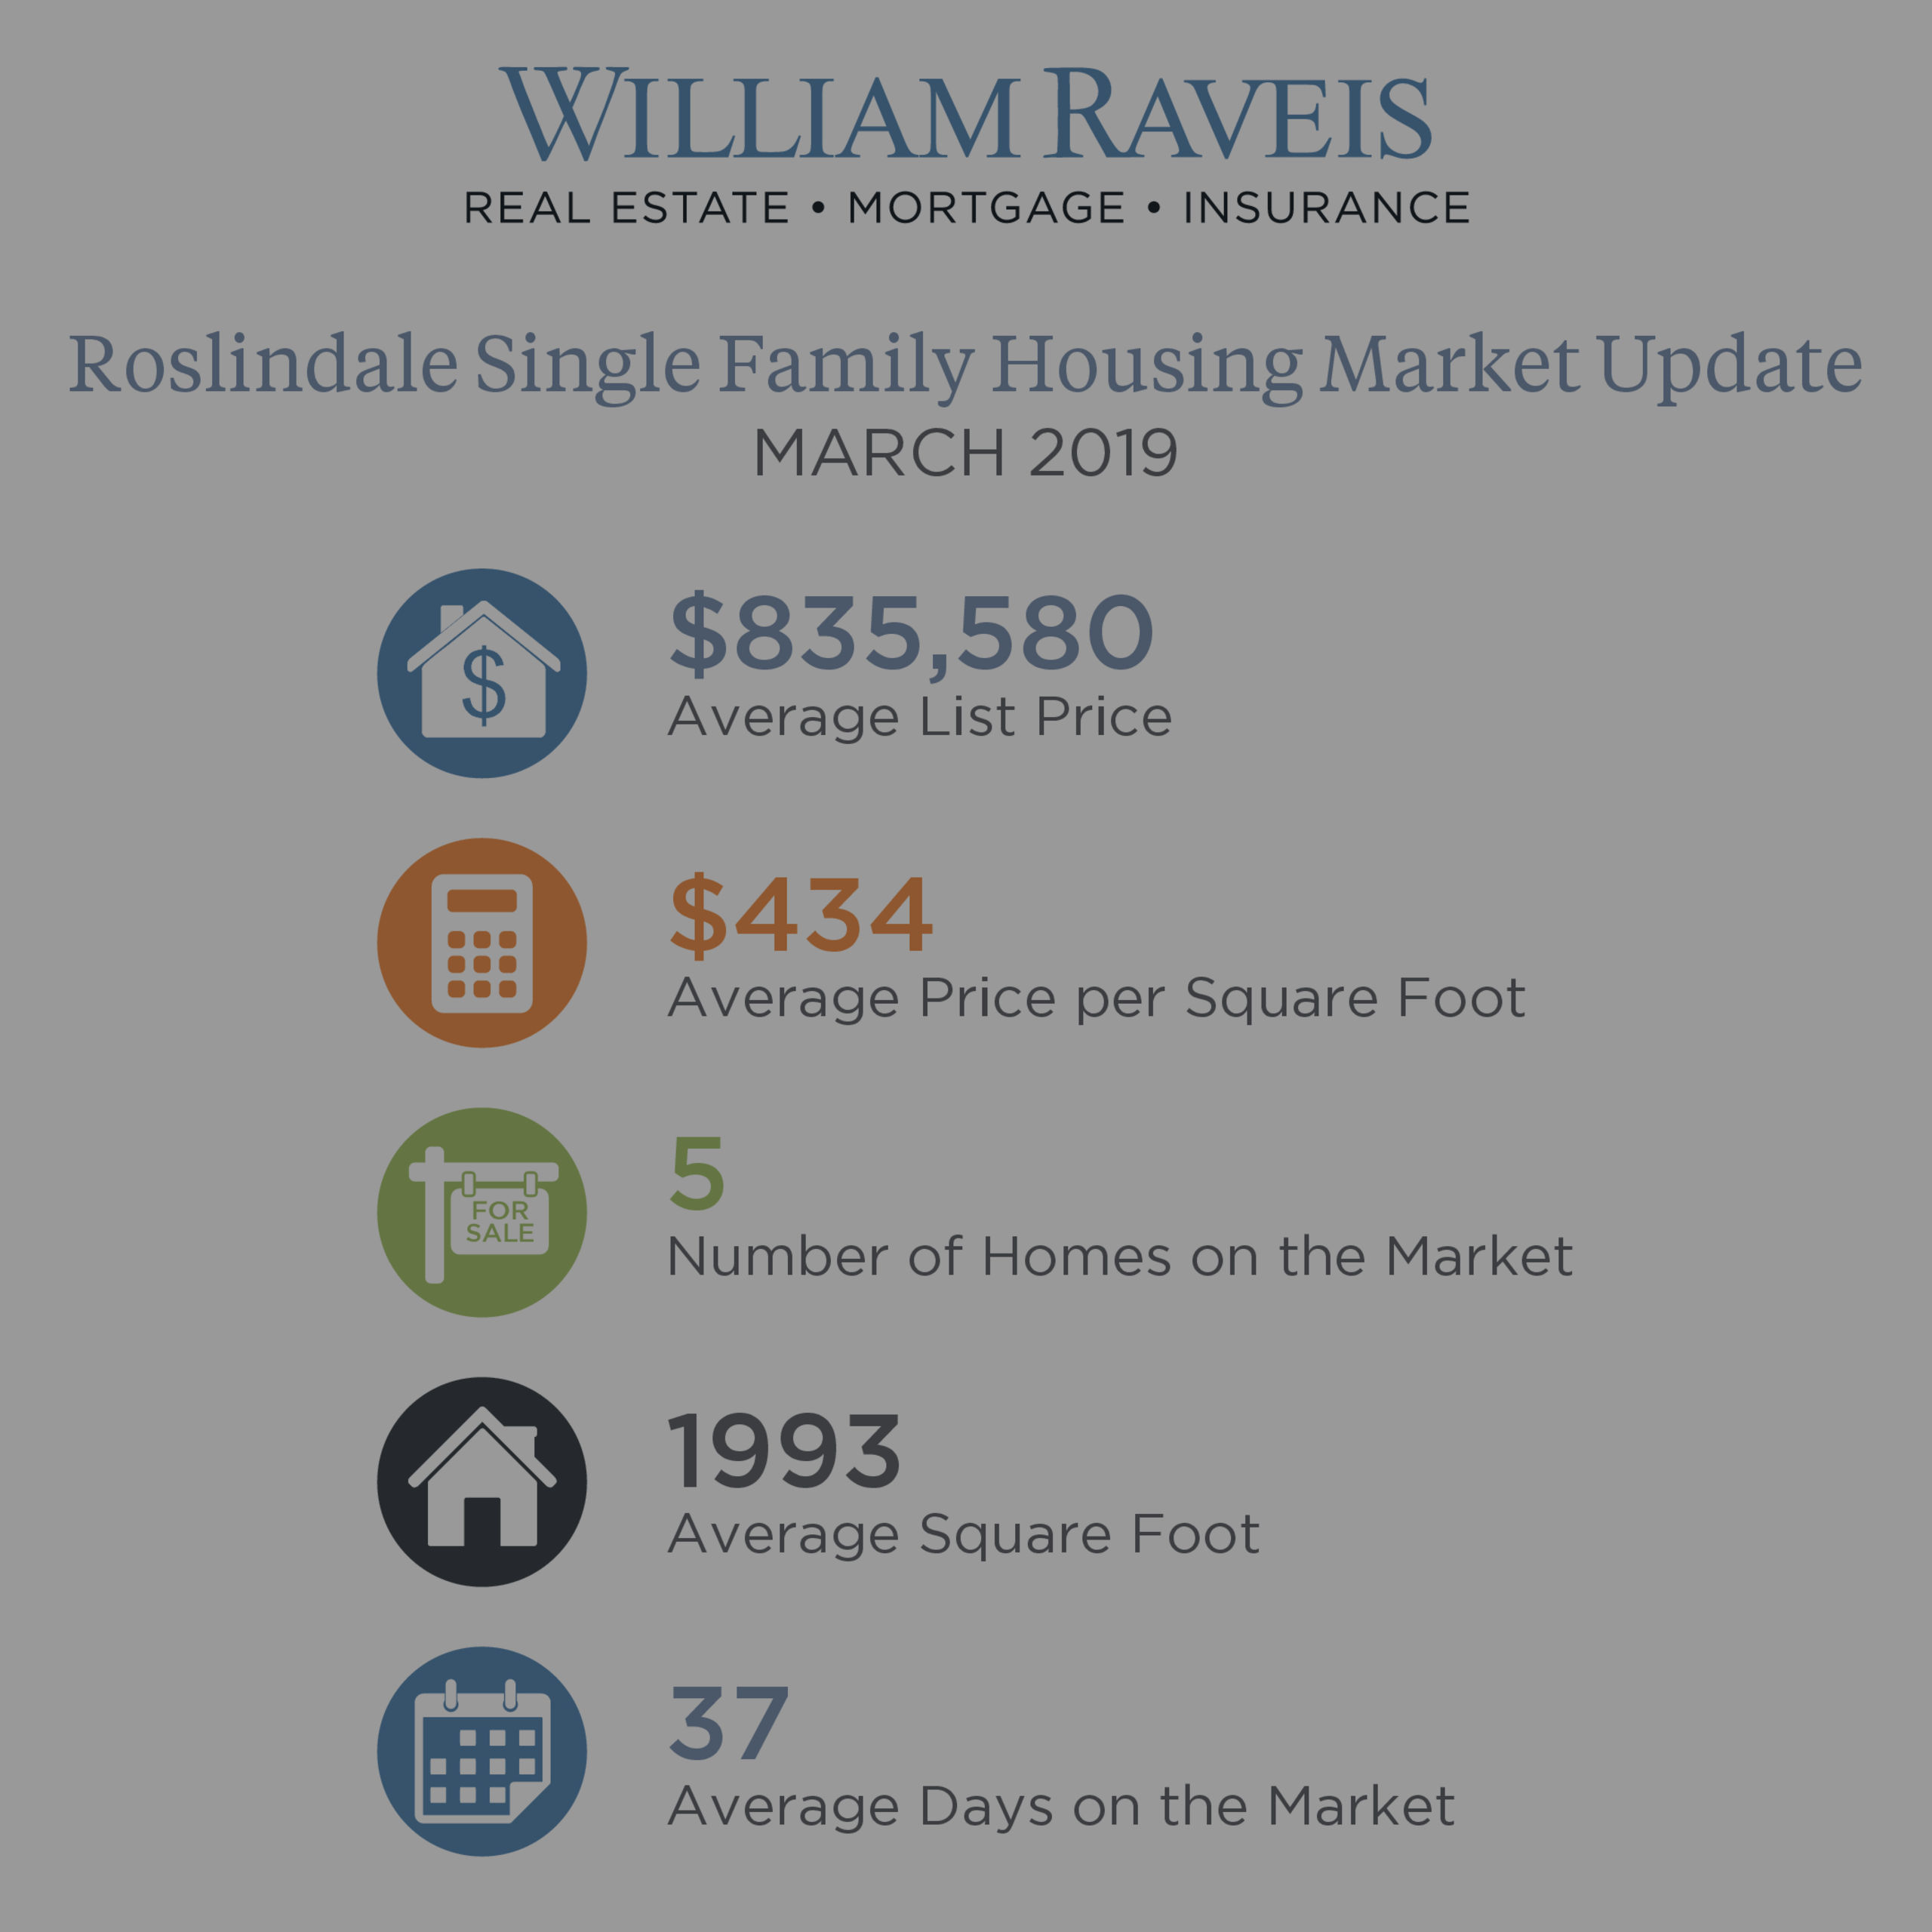 Roslindale Housing Market Update March 2019 Condominium & Single Family